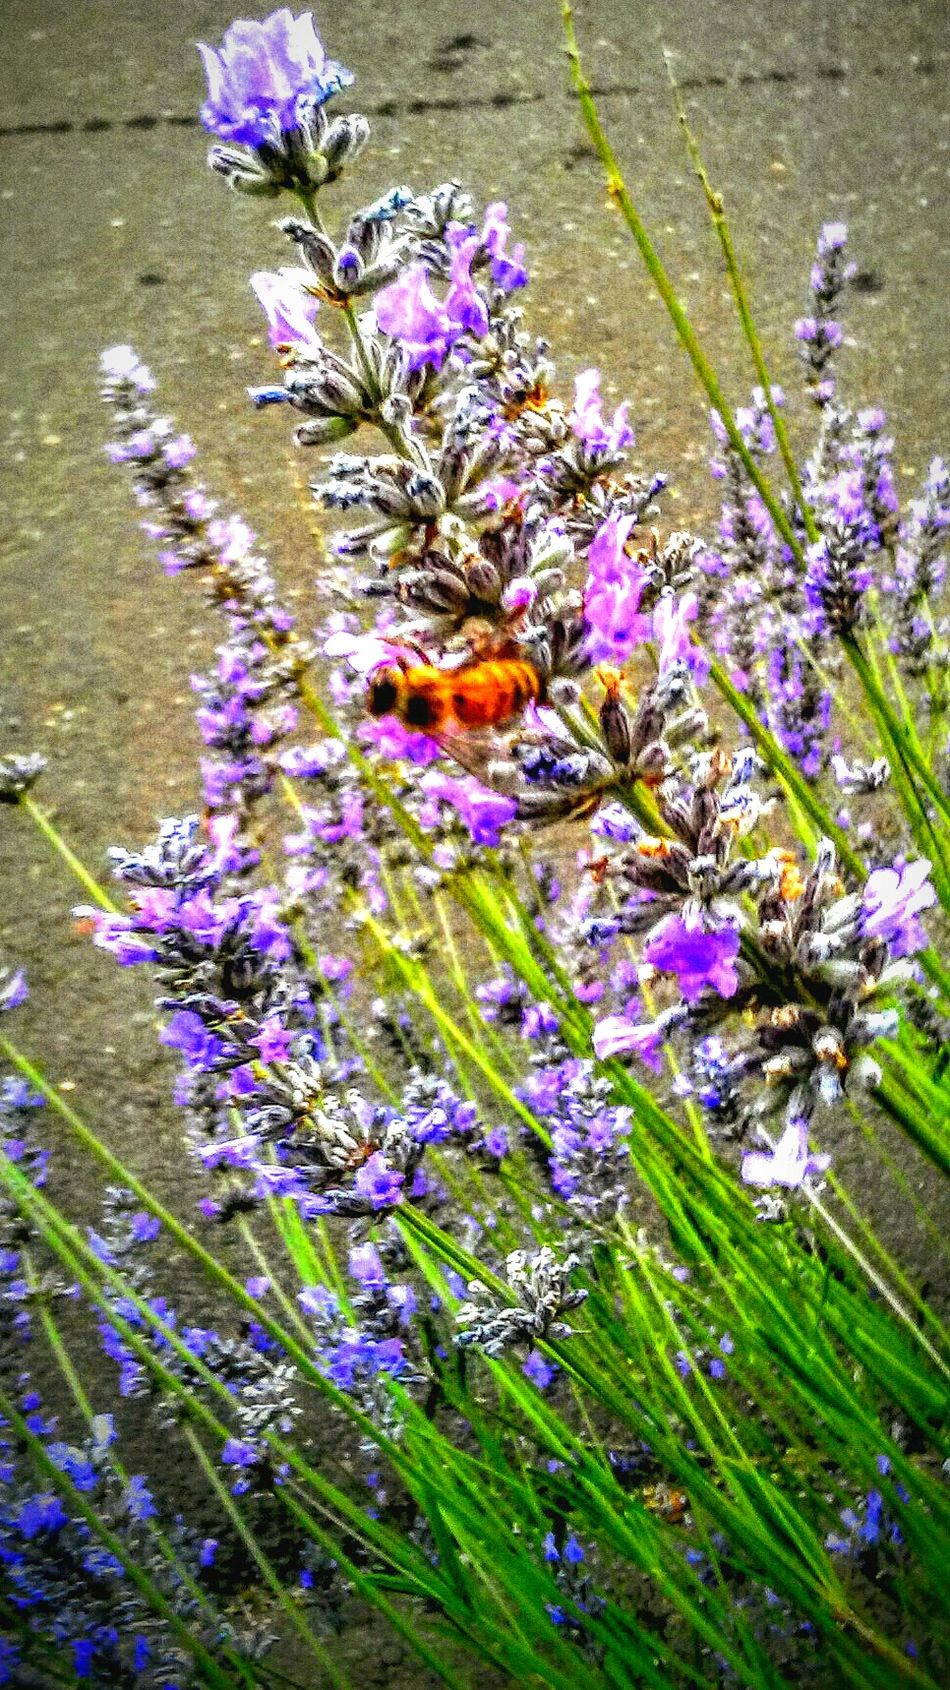 Working Bee HoneyBee Save The Honey Bees Pollination Lavander Taking Photos Check This Out Enjoying Life Labor Of Love Beautiful Garden Nature Photography Nature_collection HA! Birds And The Bees Downtown EyeEmNewHere